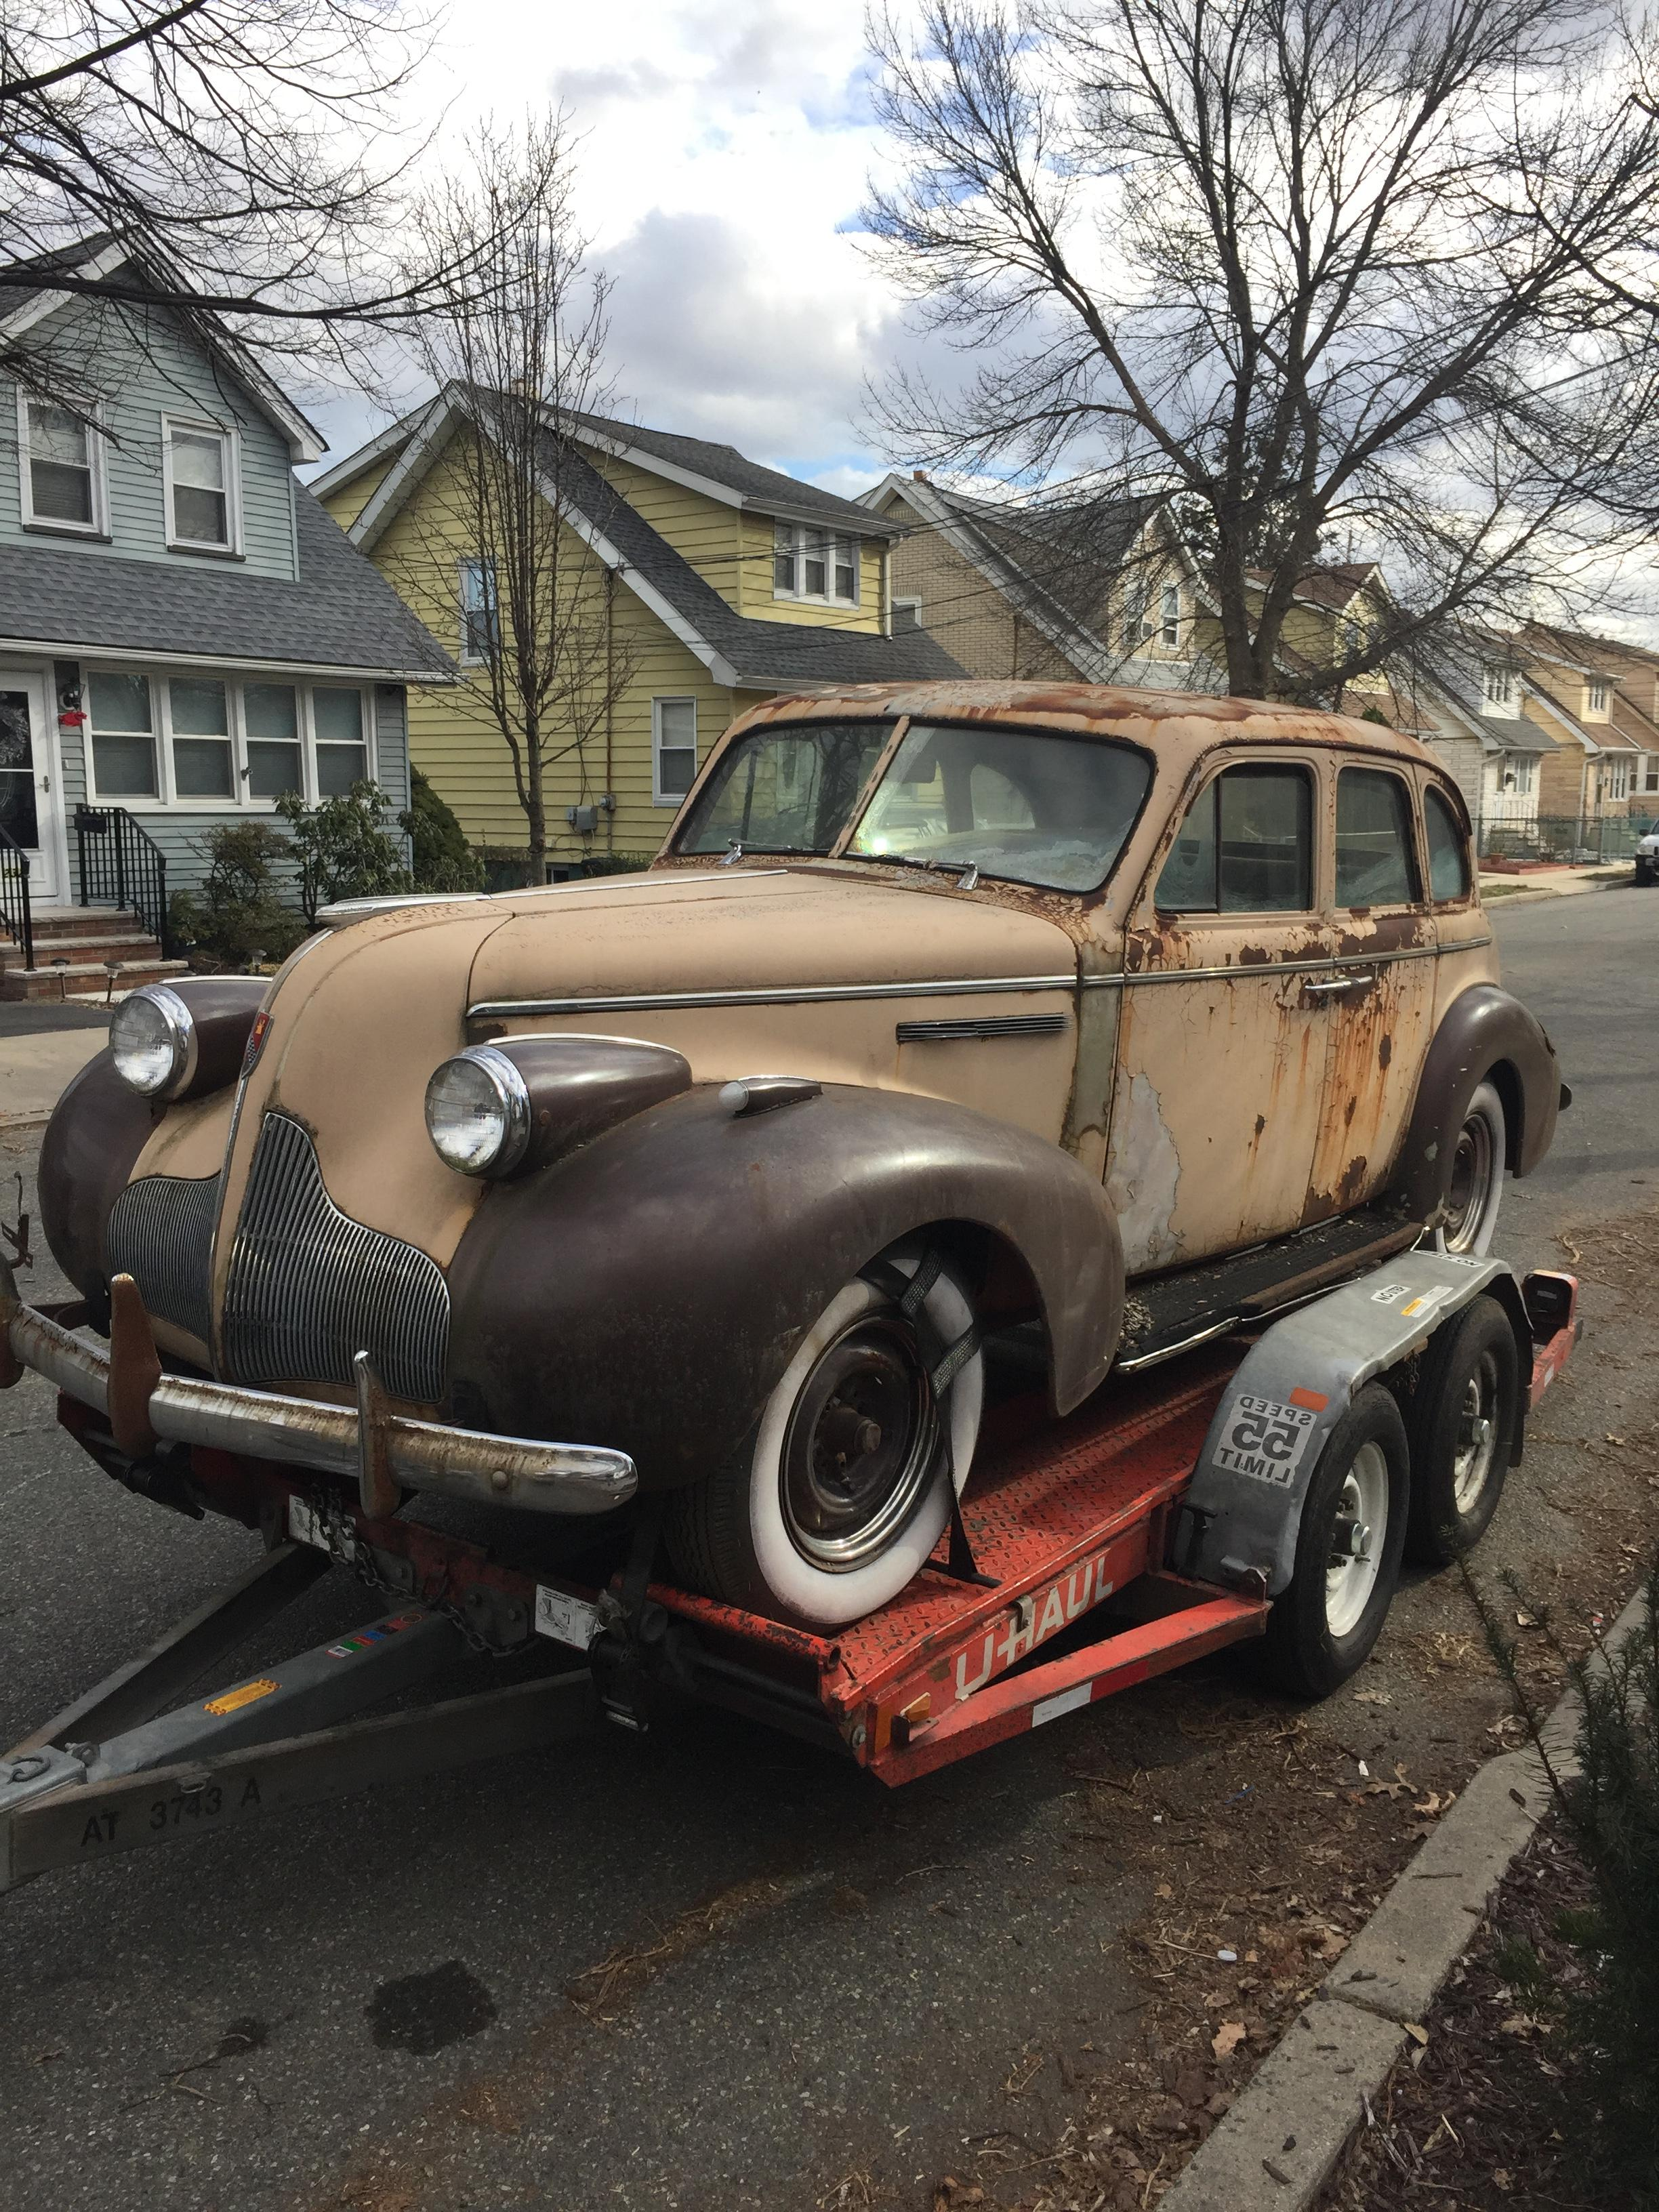 1939 Buick Vin Pre War Antique Automobile Club Of 1955 Chevy Frame Number Location Hello Everyone Ive Read Your Post And I Want To Know Is There Anymore Wisdom On Here That Can Help Me Out